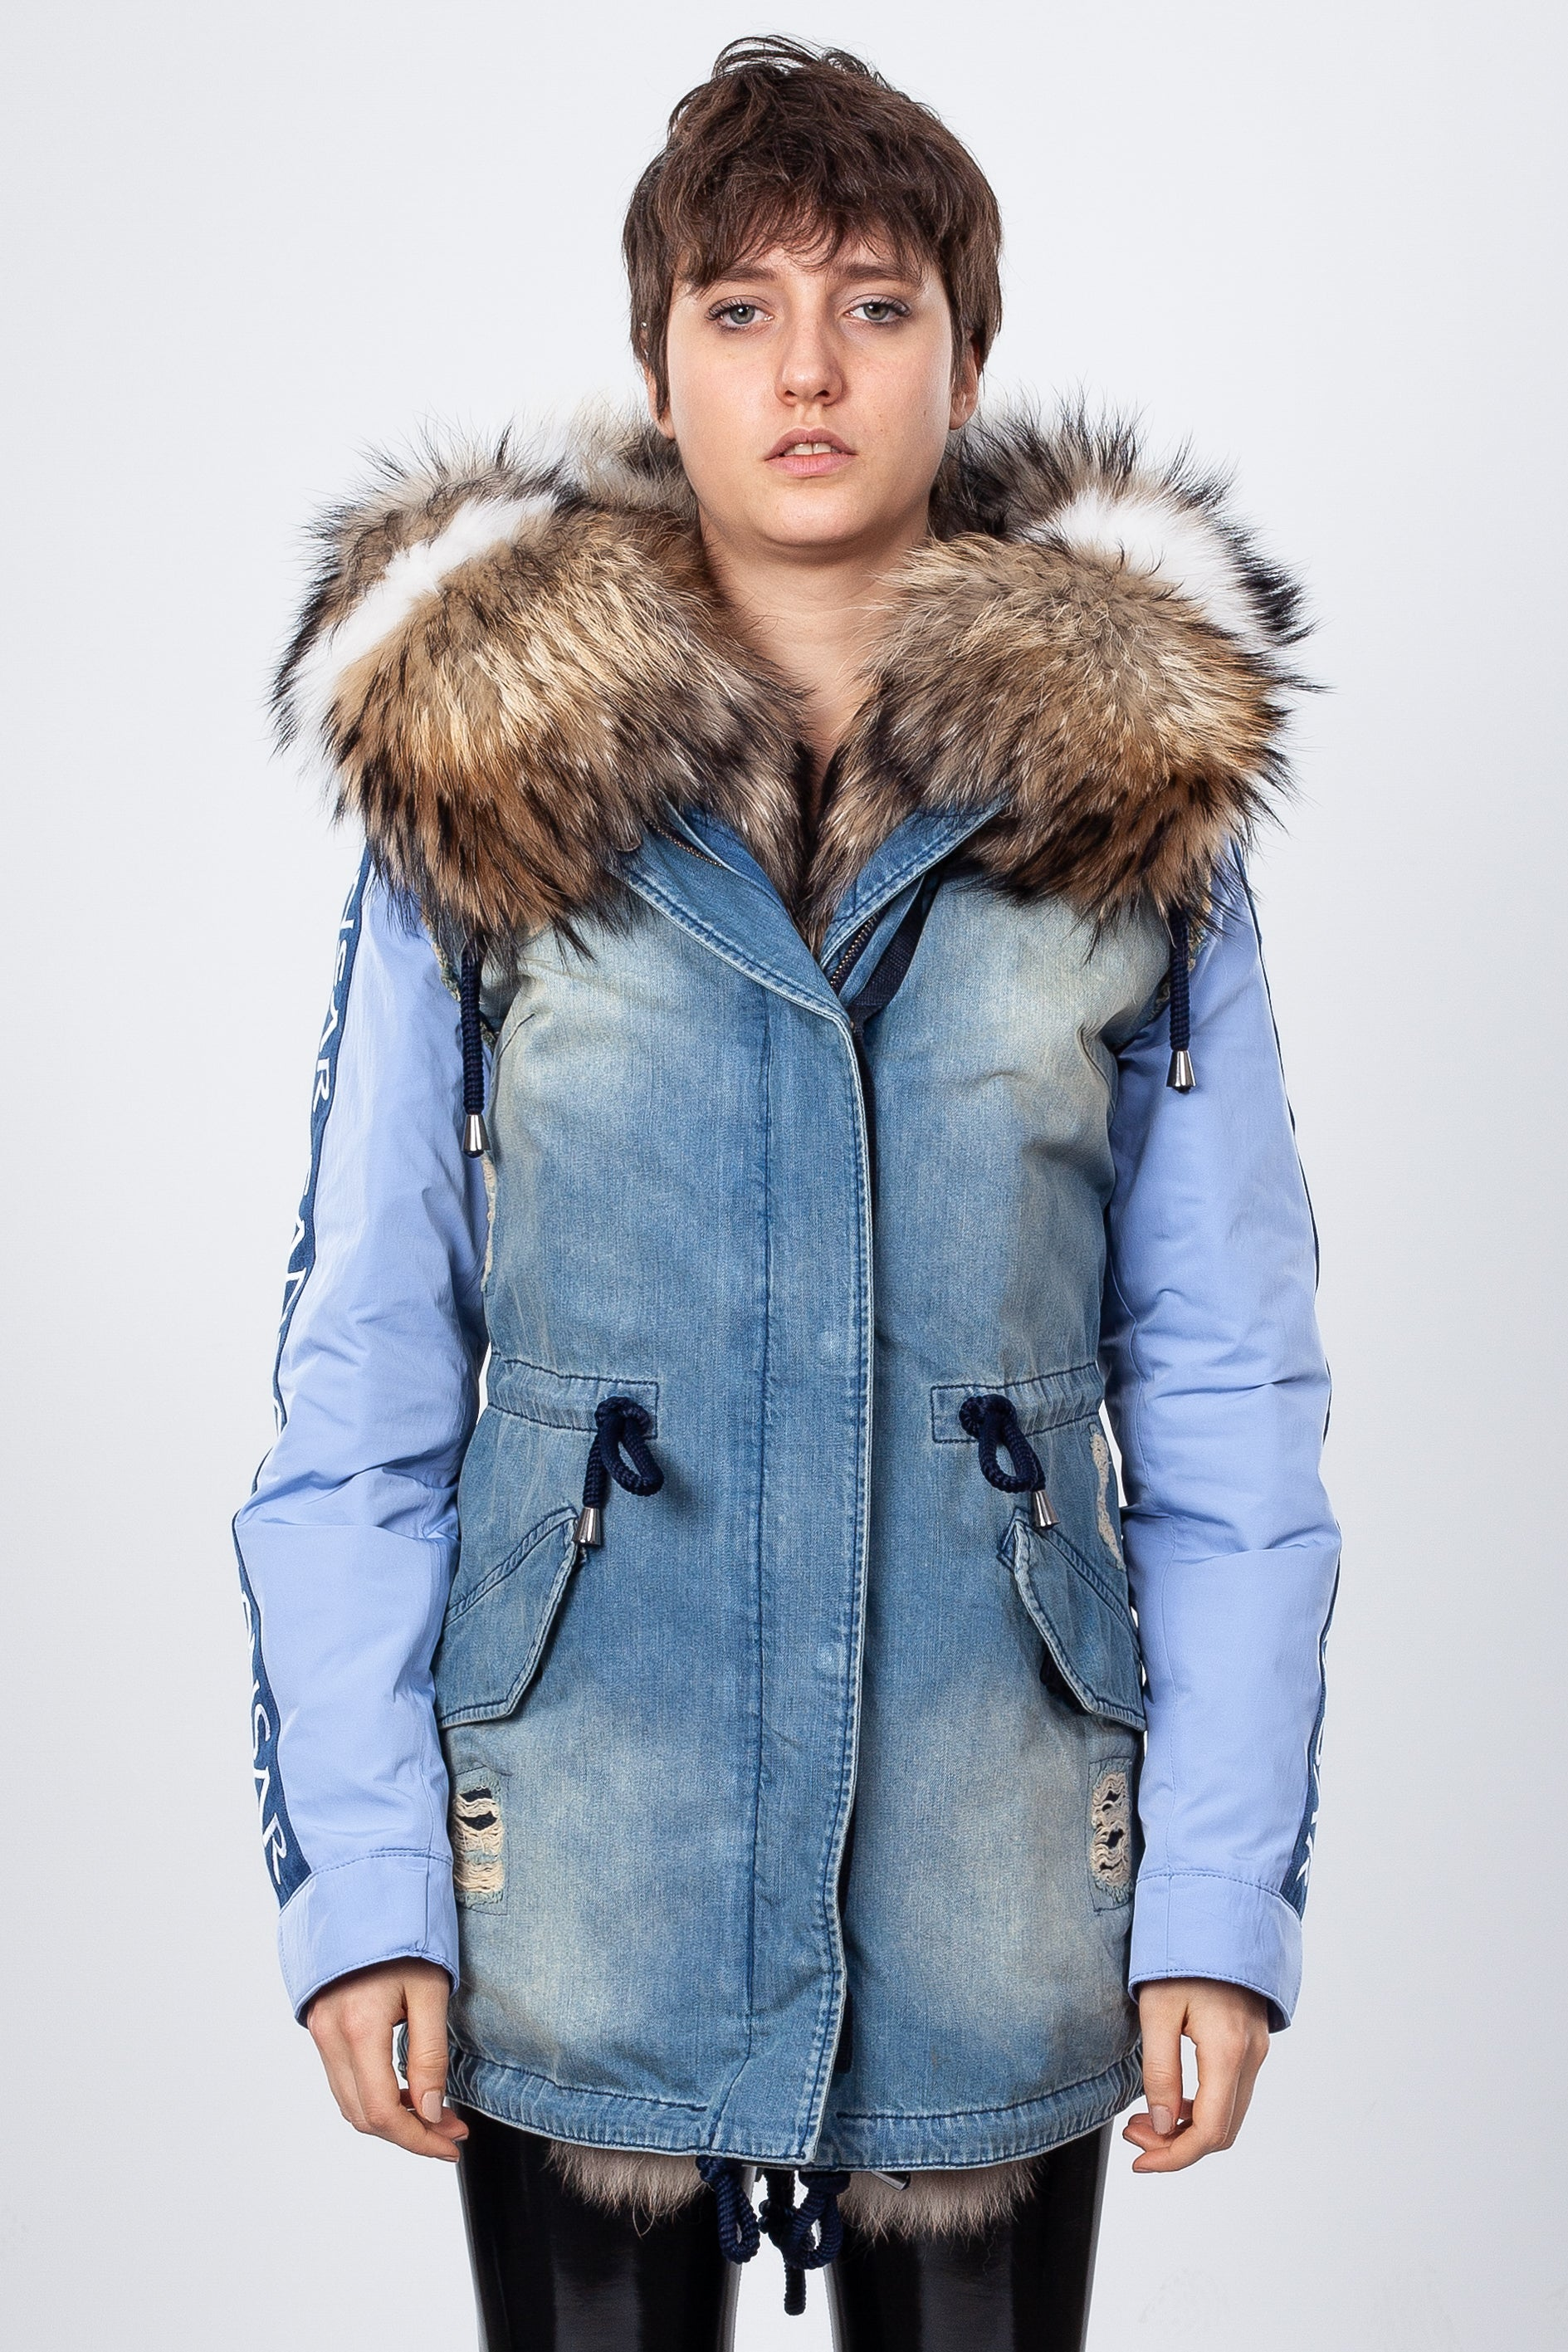 Blue Denim Midi Parka Main Fabric is Waterproof / Raincoat Fabric With Finnraccoon Mixed Blue Shadow Fox